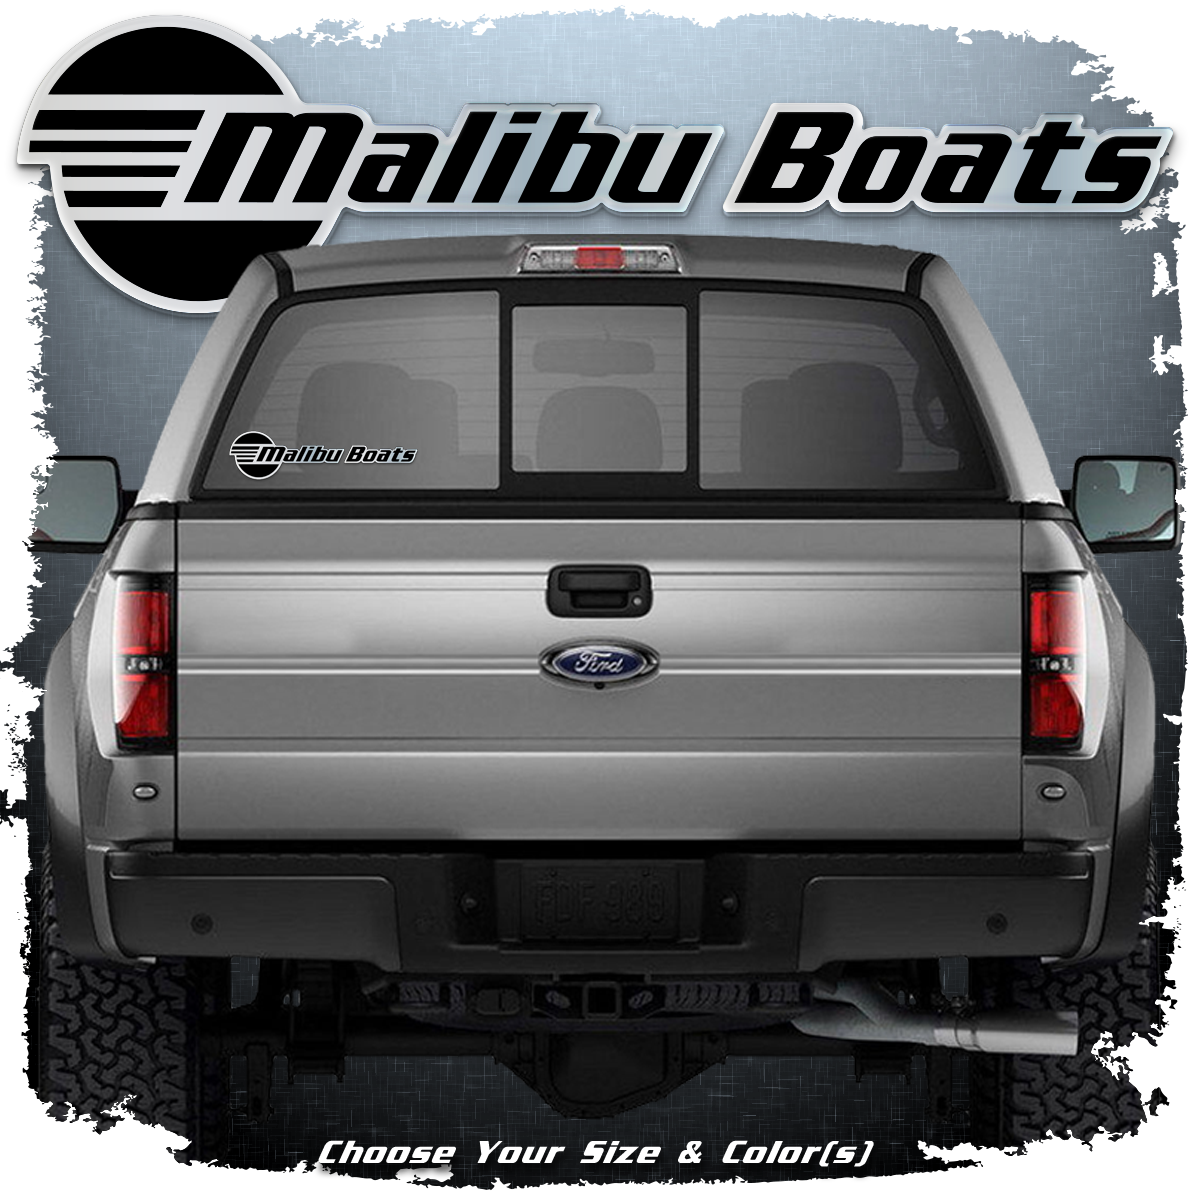 Domed Malibu Boats Window Decal, Choose Your Size & Color(s)